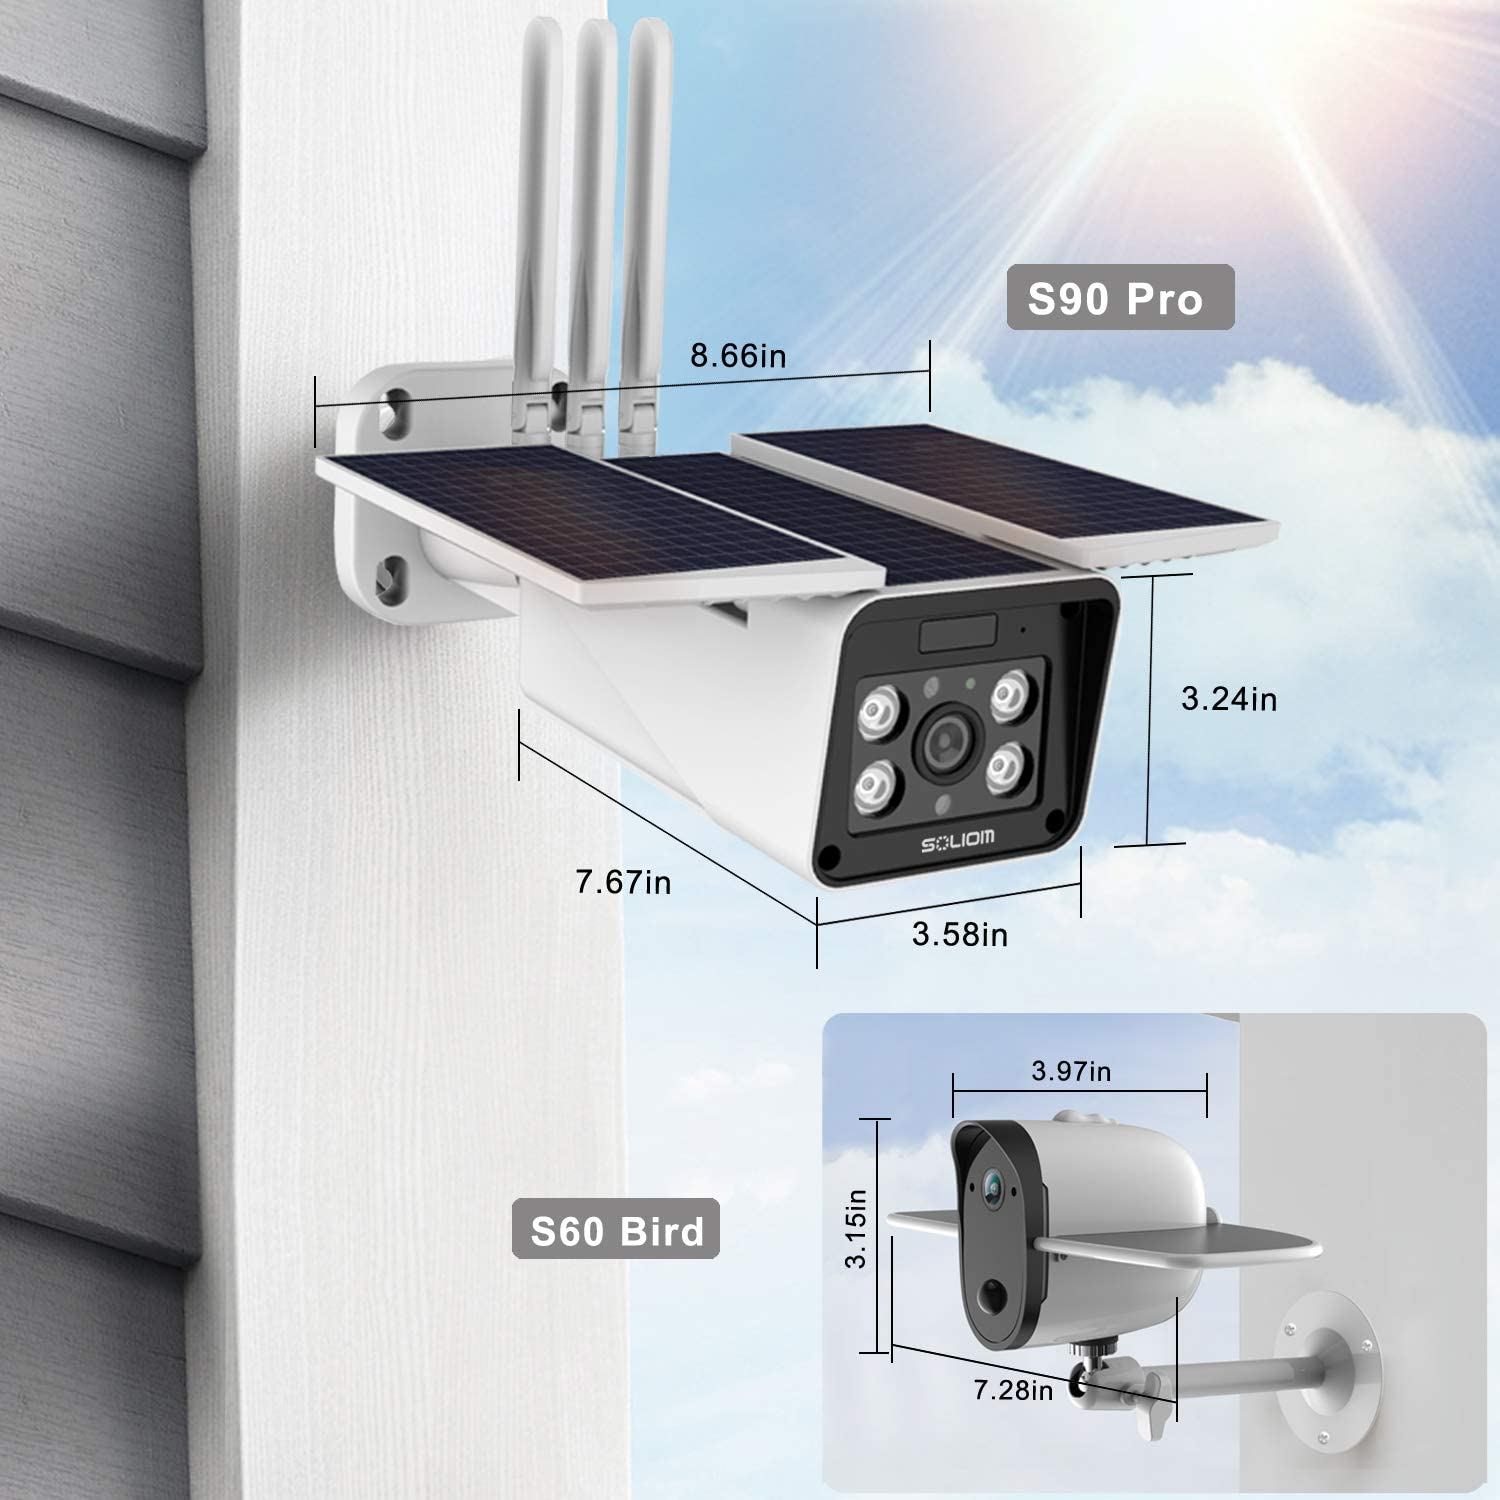 Outdoor Home Security Solar Battery Camera, Soliom S90 Pro 1080P Wireless Smart IP Cam with Night Vision, Two Way Audio and Accurate Motion Detection,Monitor with iOS, Android App – No Monthly Fee.